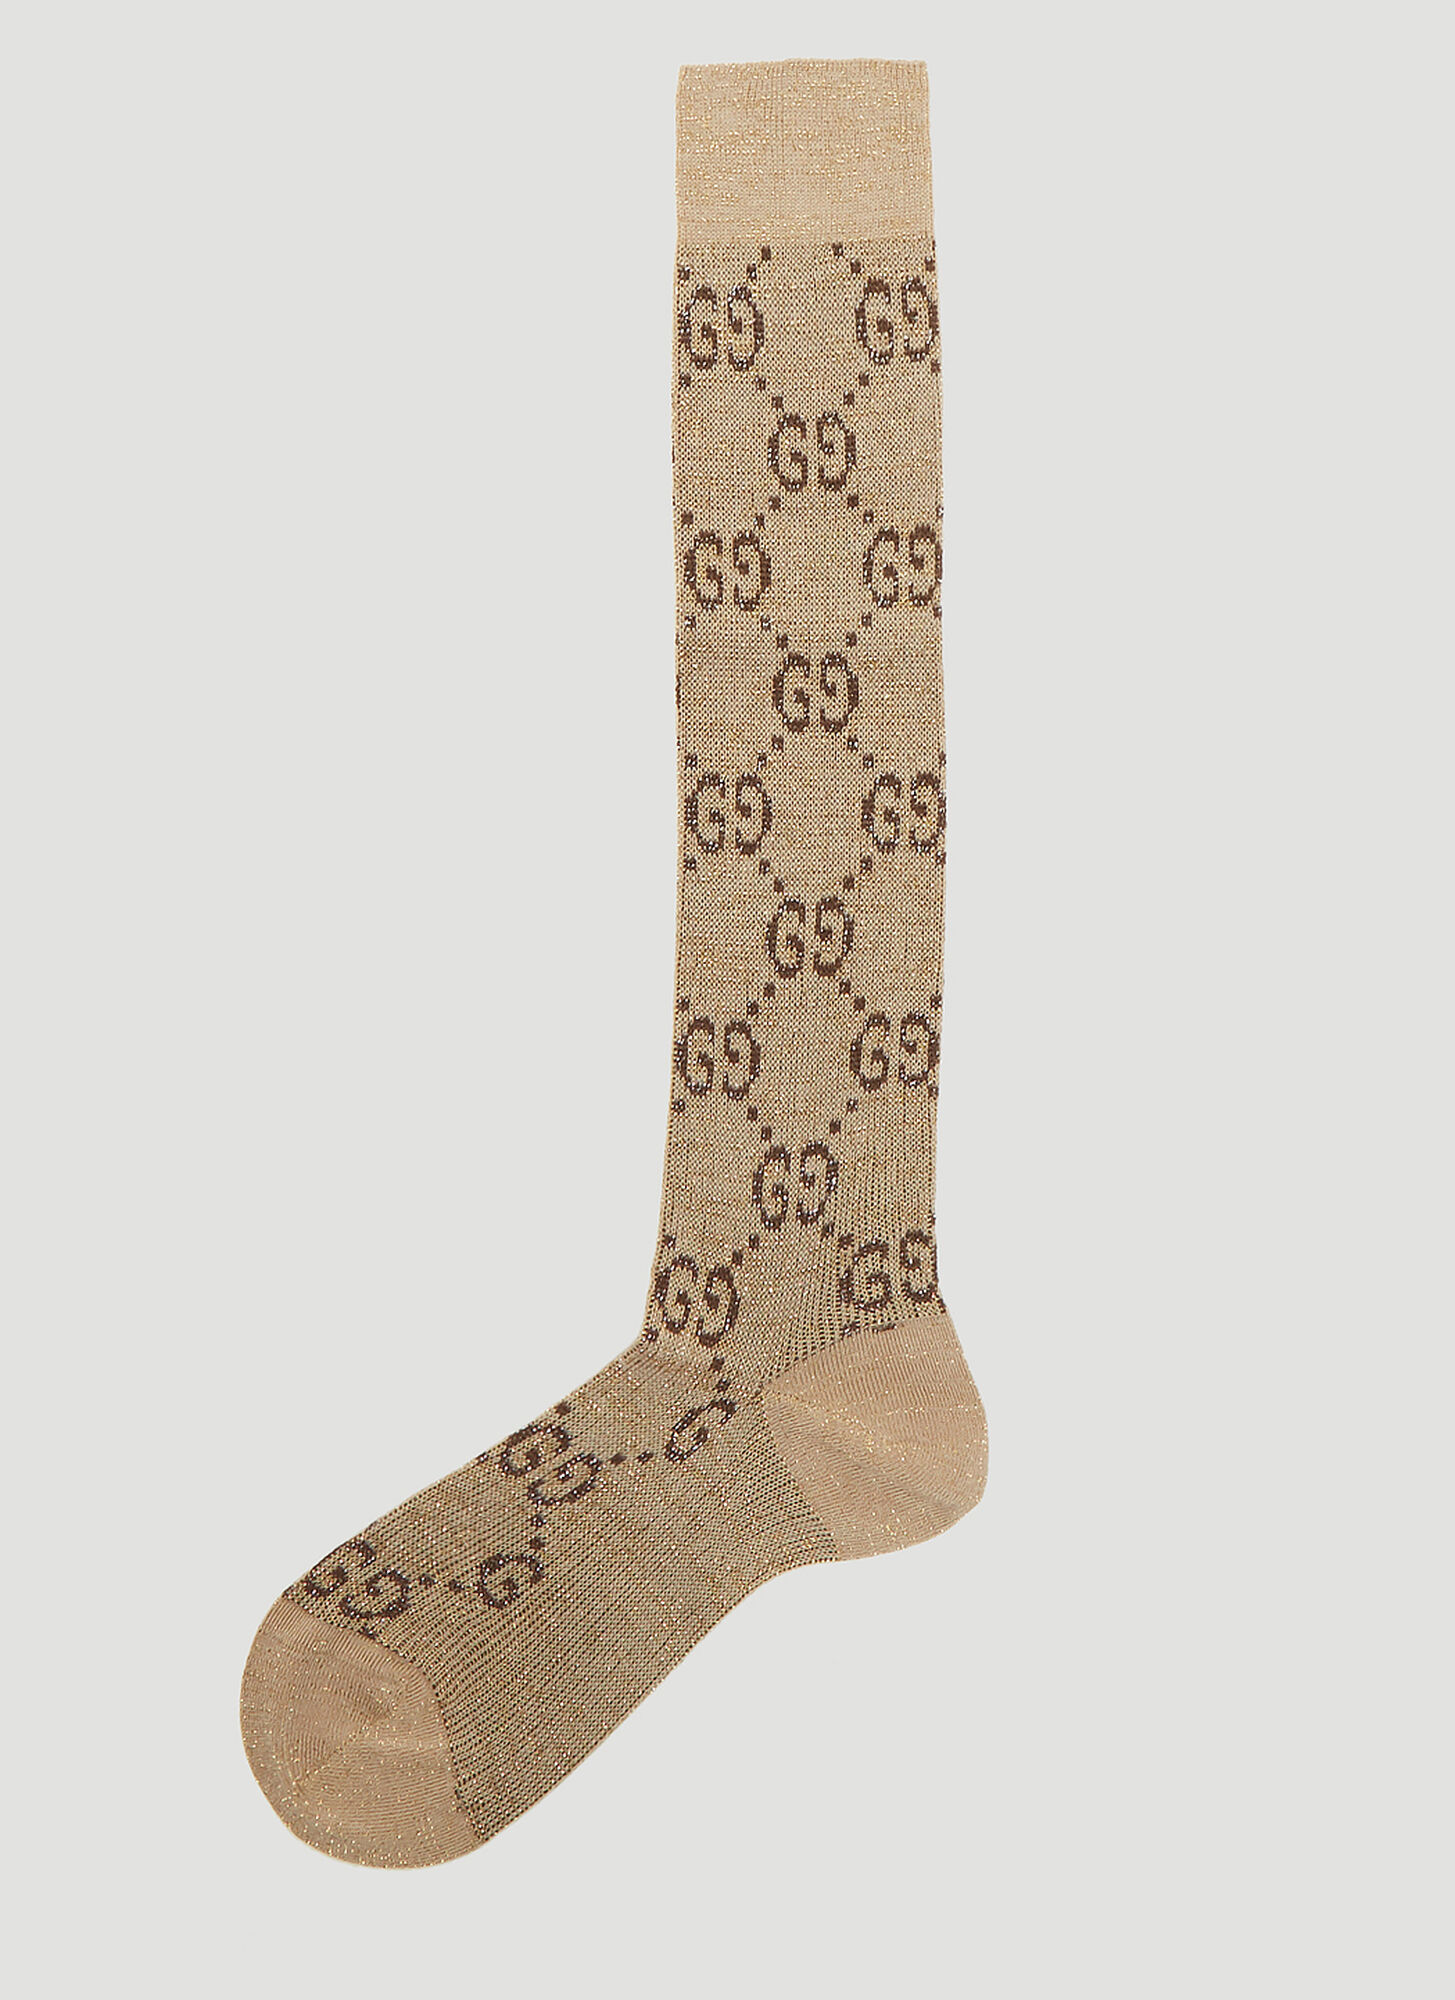 Gucci Metallic Interlocking G Motif Calf Socks in Beige